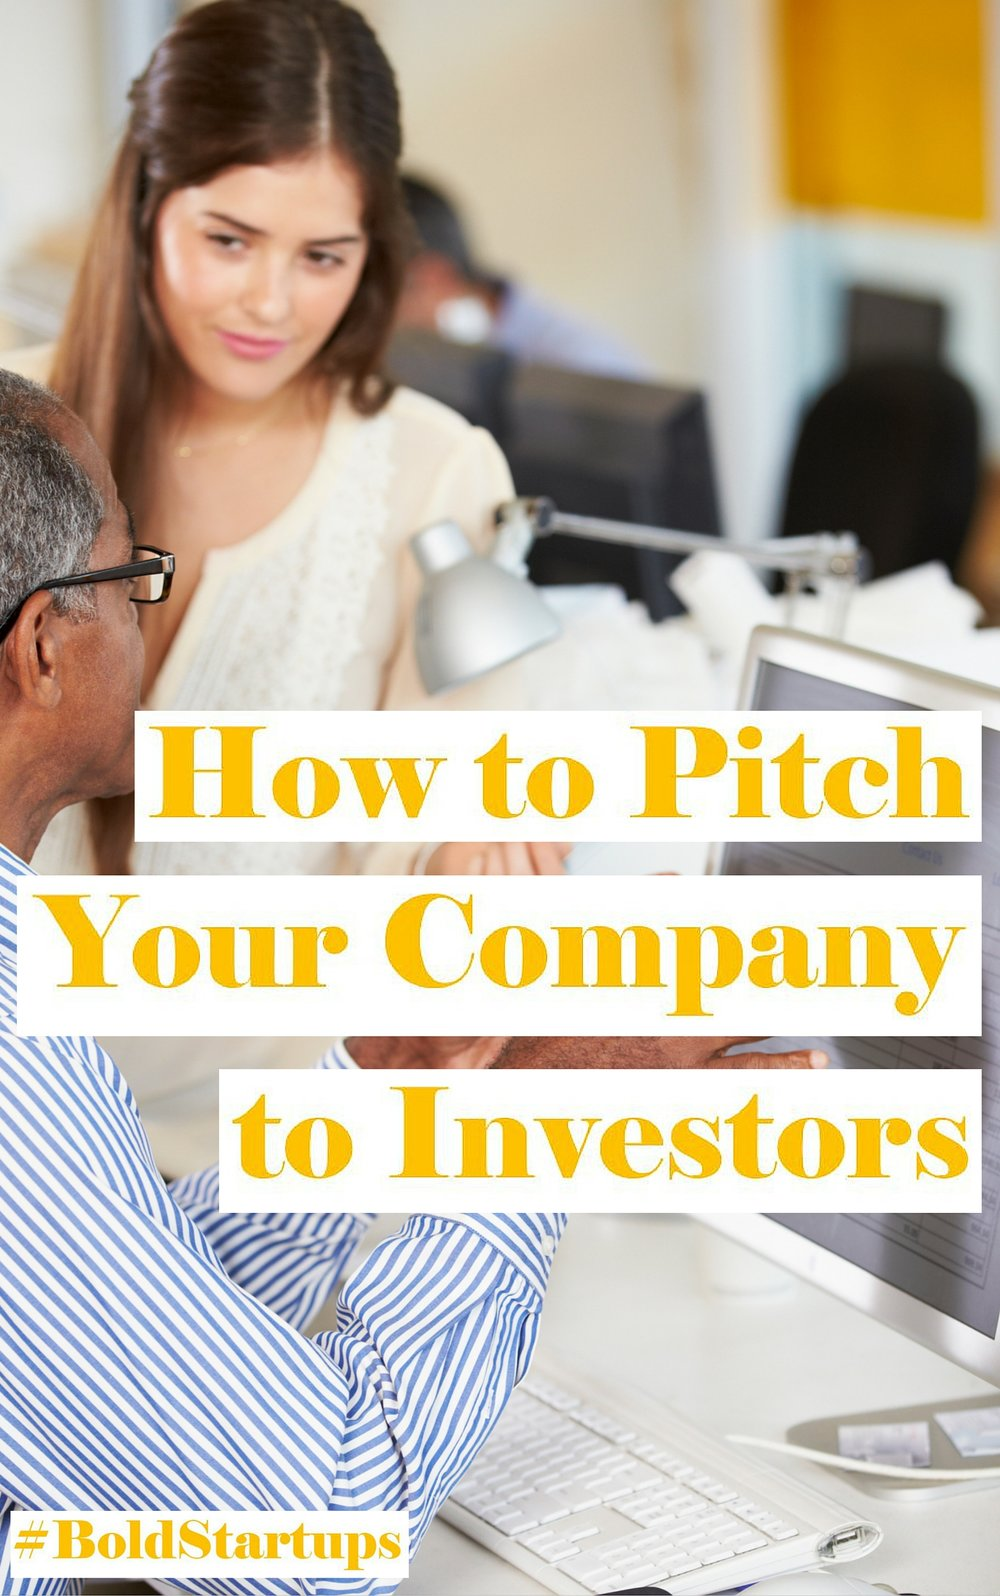 How to Pitch Your Company to Investors (2).jpg